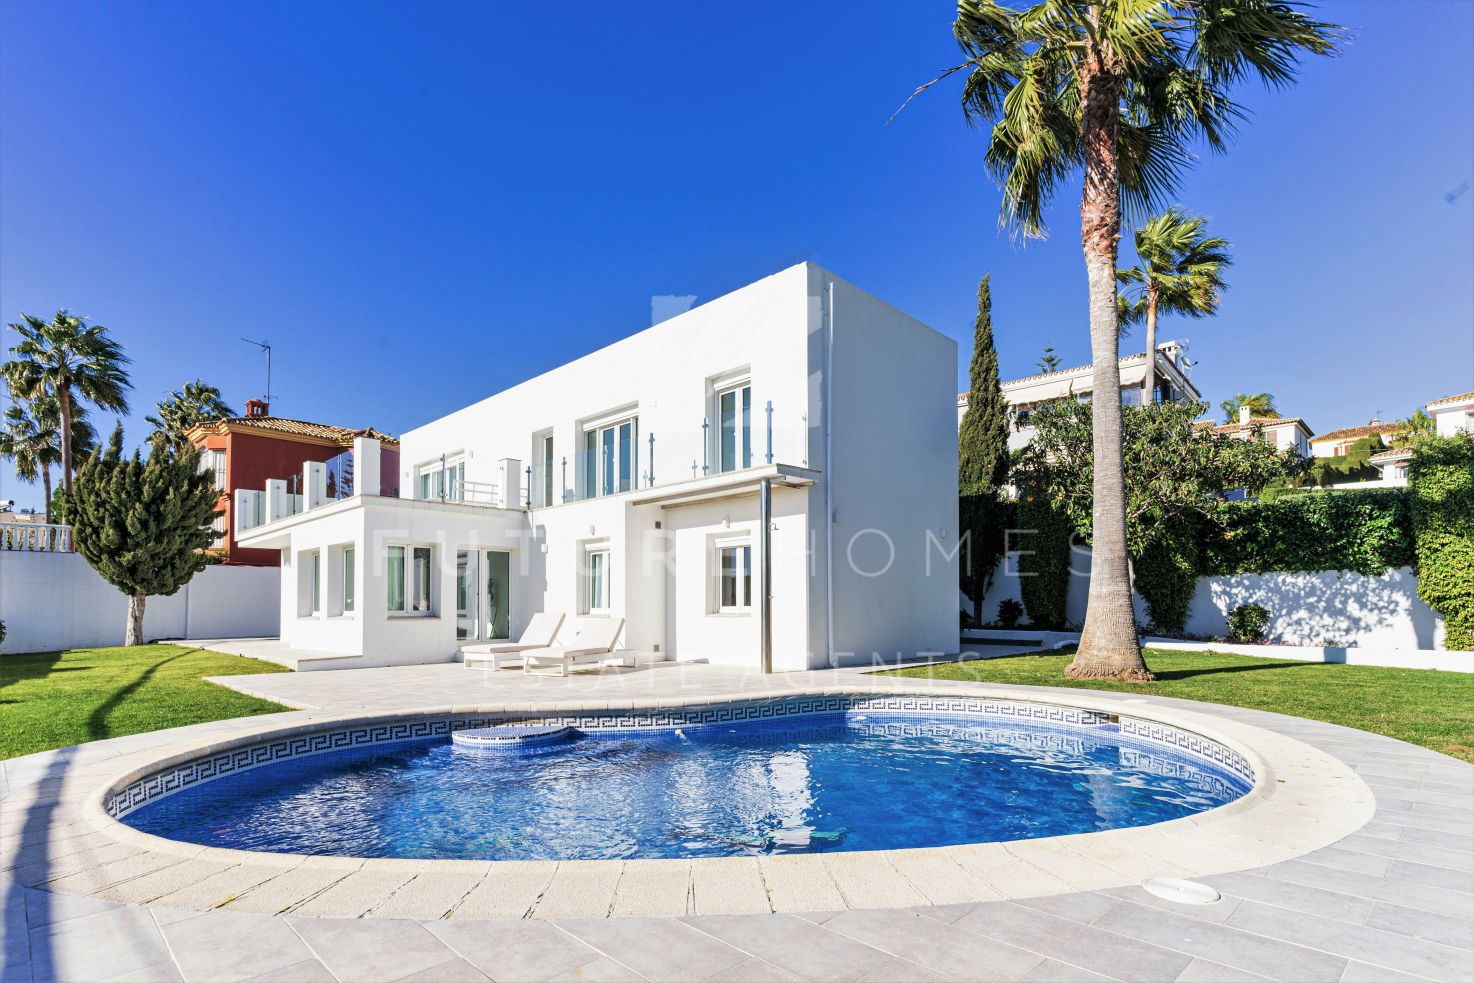 Detached villa with sea views in the popular urbanisation of Seghers next to Estepona port